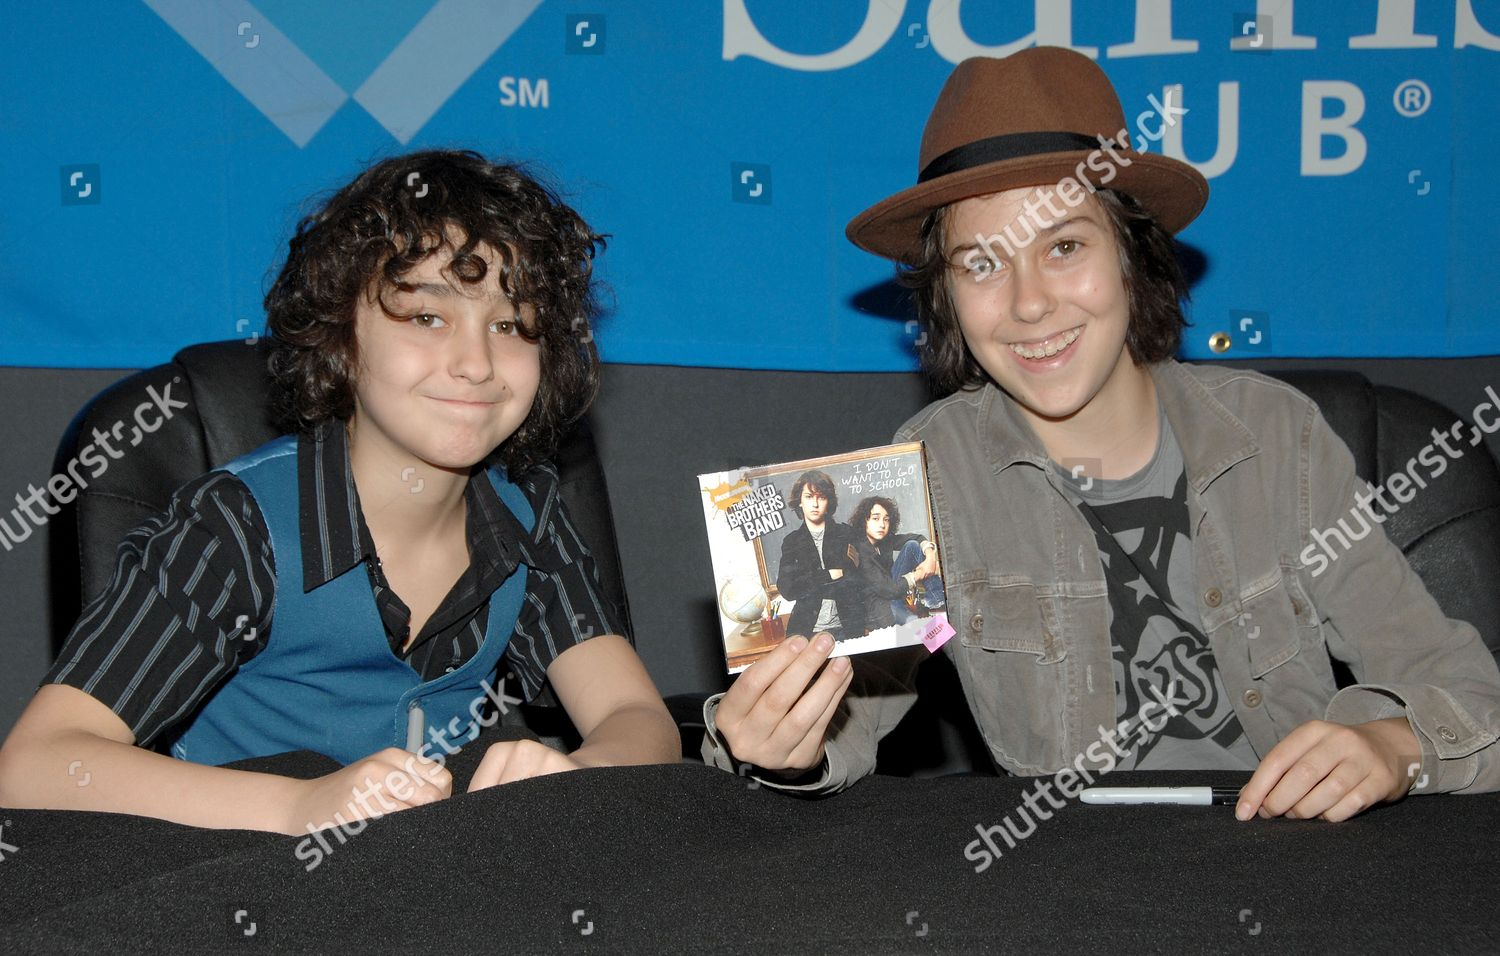 Are mistaken. naked brothers band 2008 likely